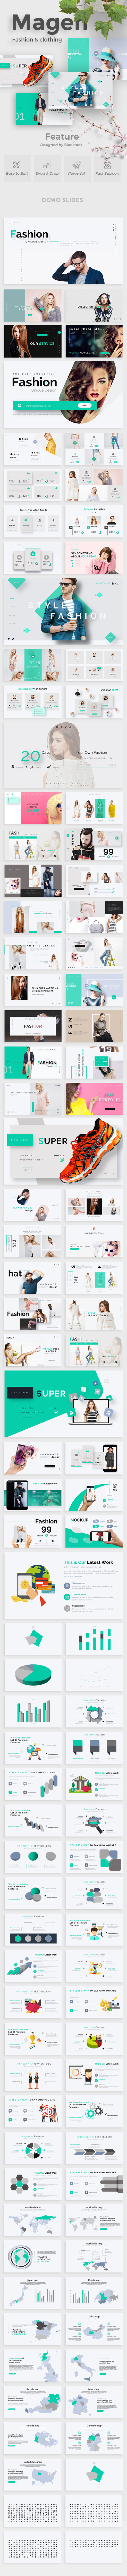 Magen Fashion & Clothing Powerpoint Template - Creative PowerPoint Templates